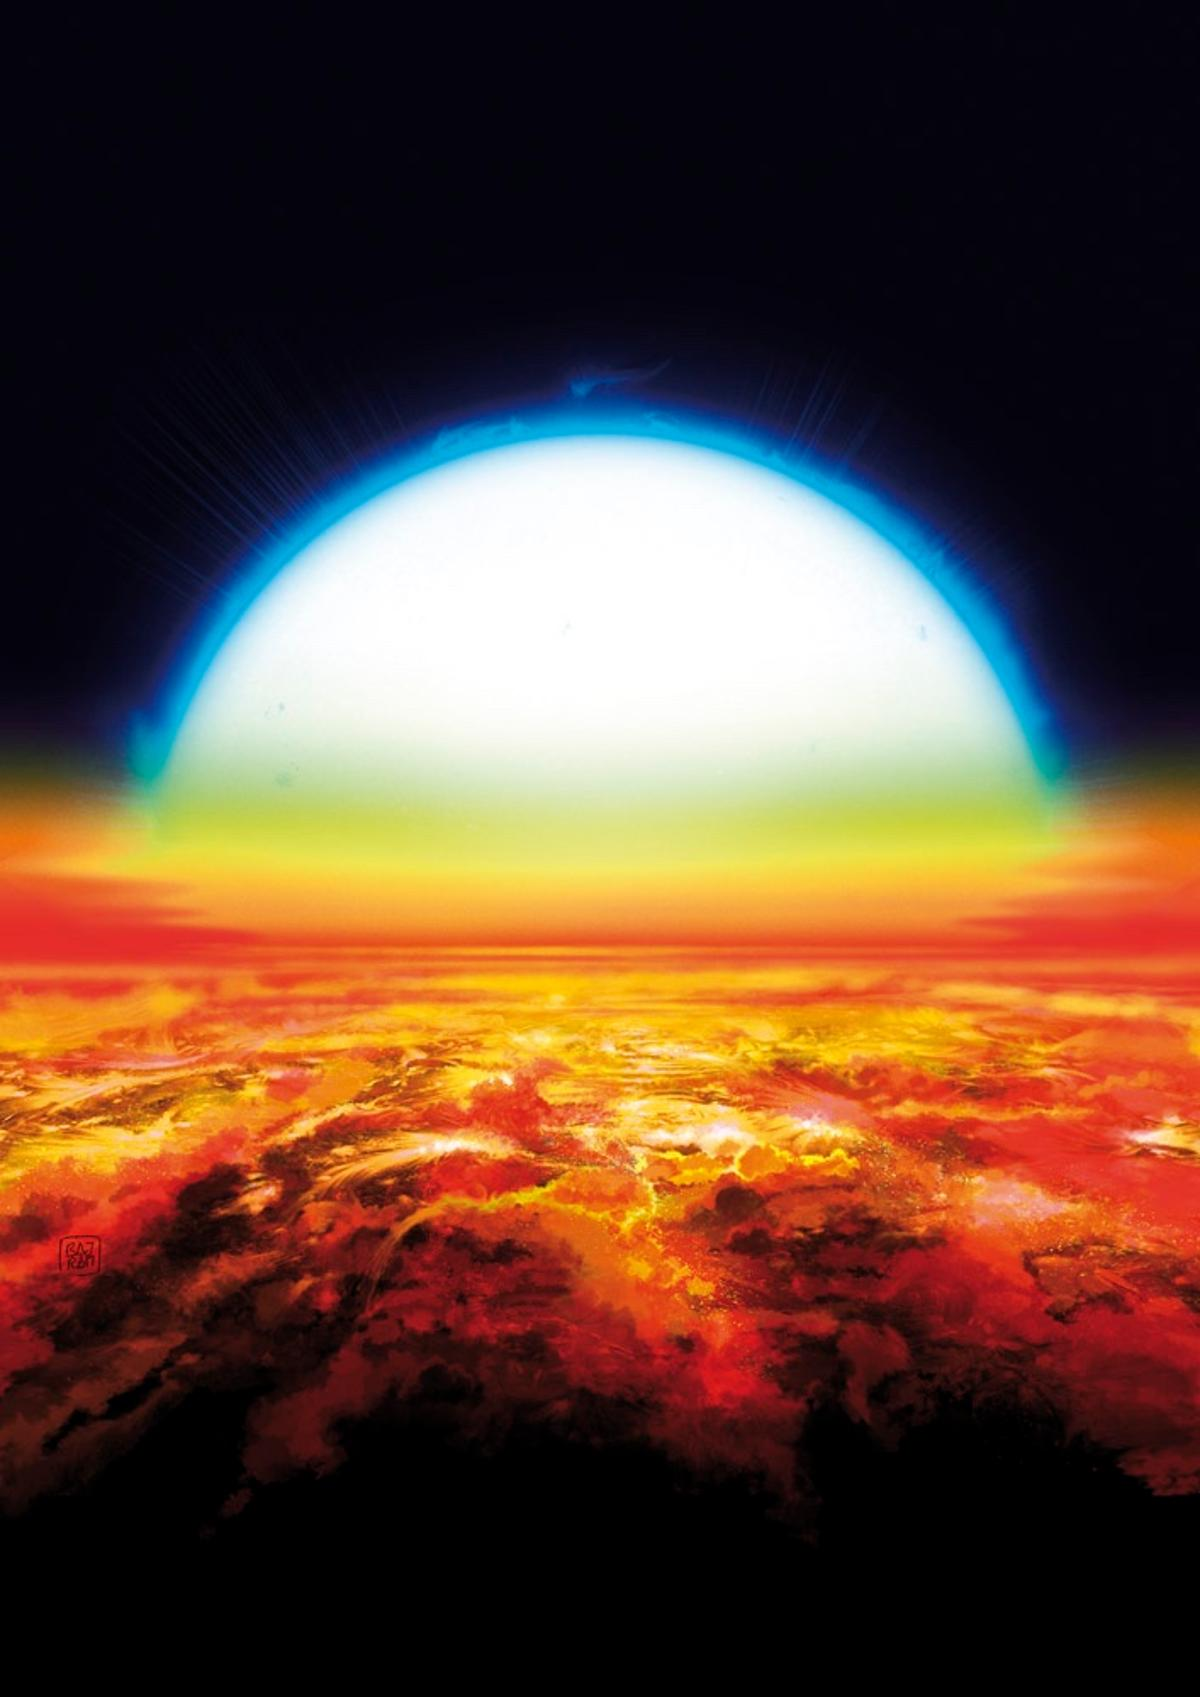 Exoplanet KELT-9b hassurface temperatures of up to 4,327° C (7,820° F)